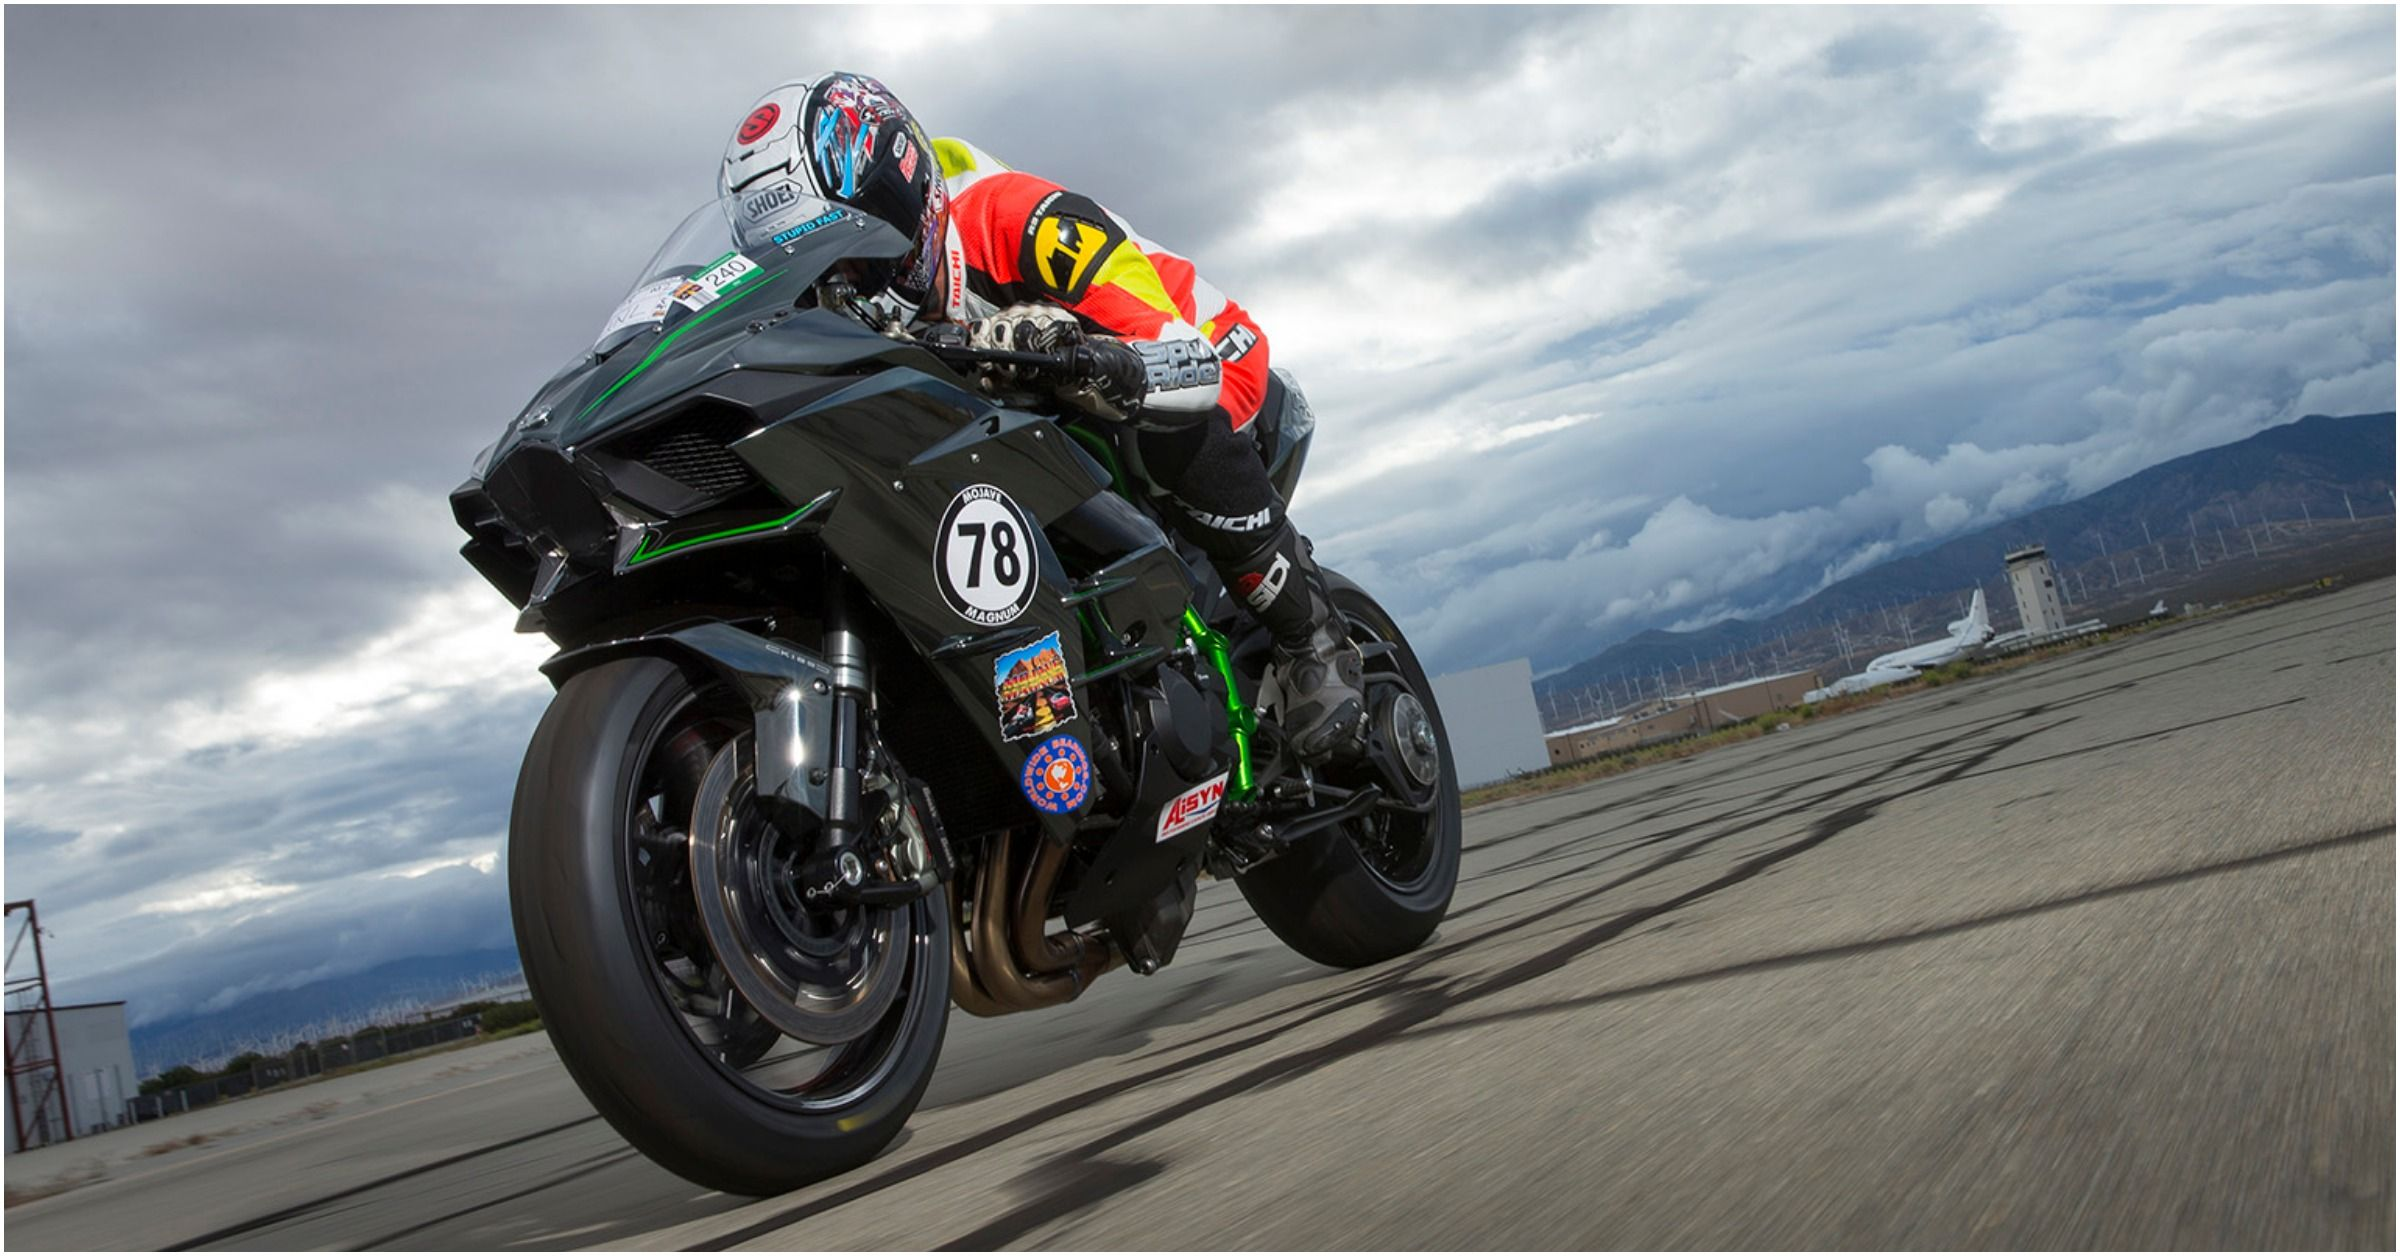 Were still anticipating the launch of the Yamaha WR155R